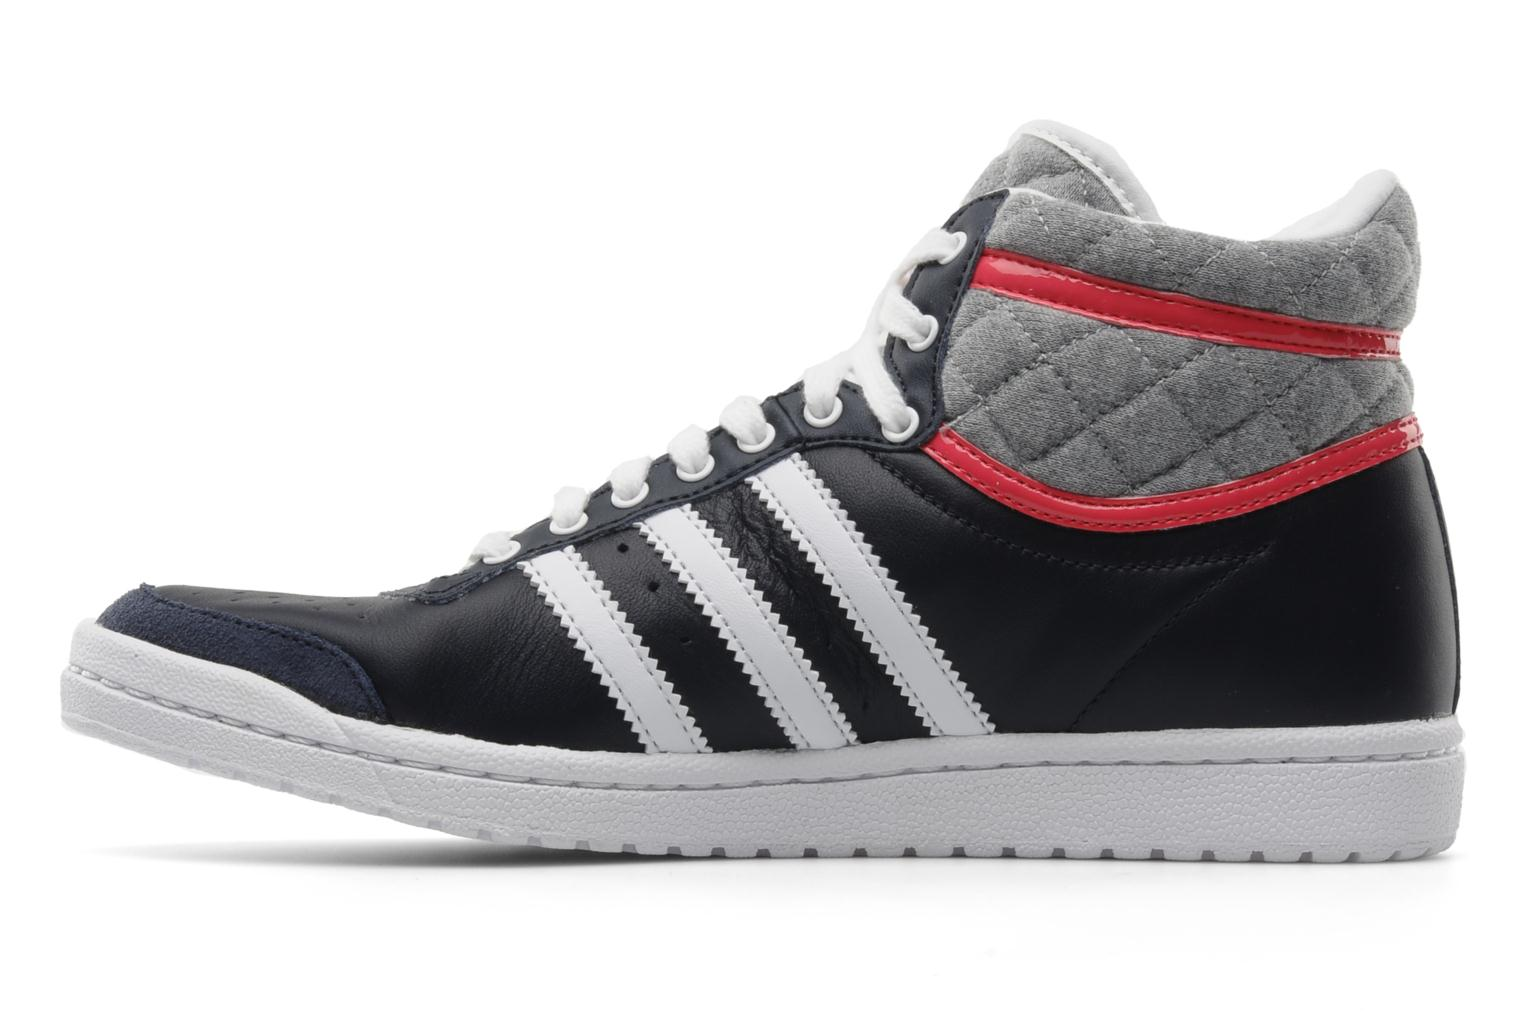 adidas baskets cuir top ten hi sleek bo